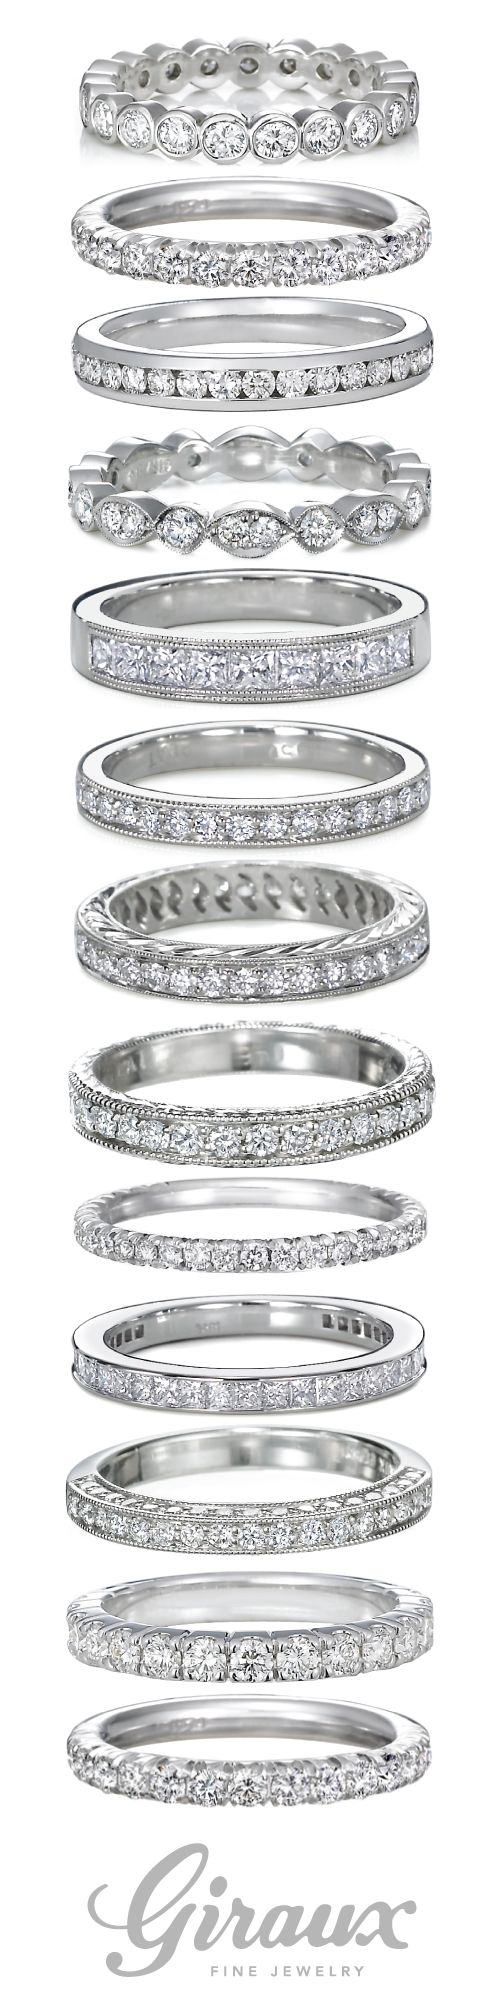 band brilliant commitment bands harry diamond masked wedding bar round winston set en